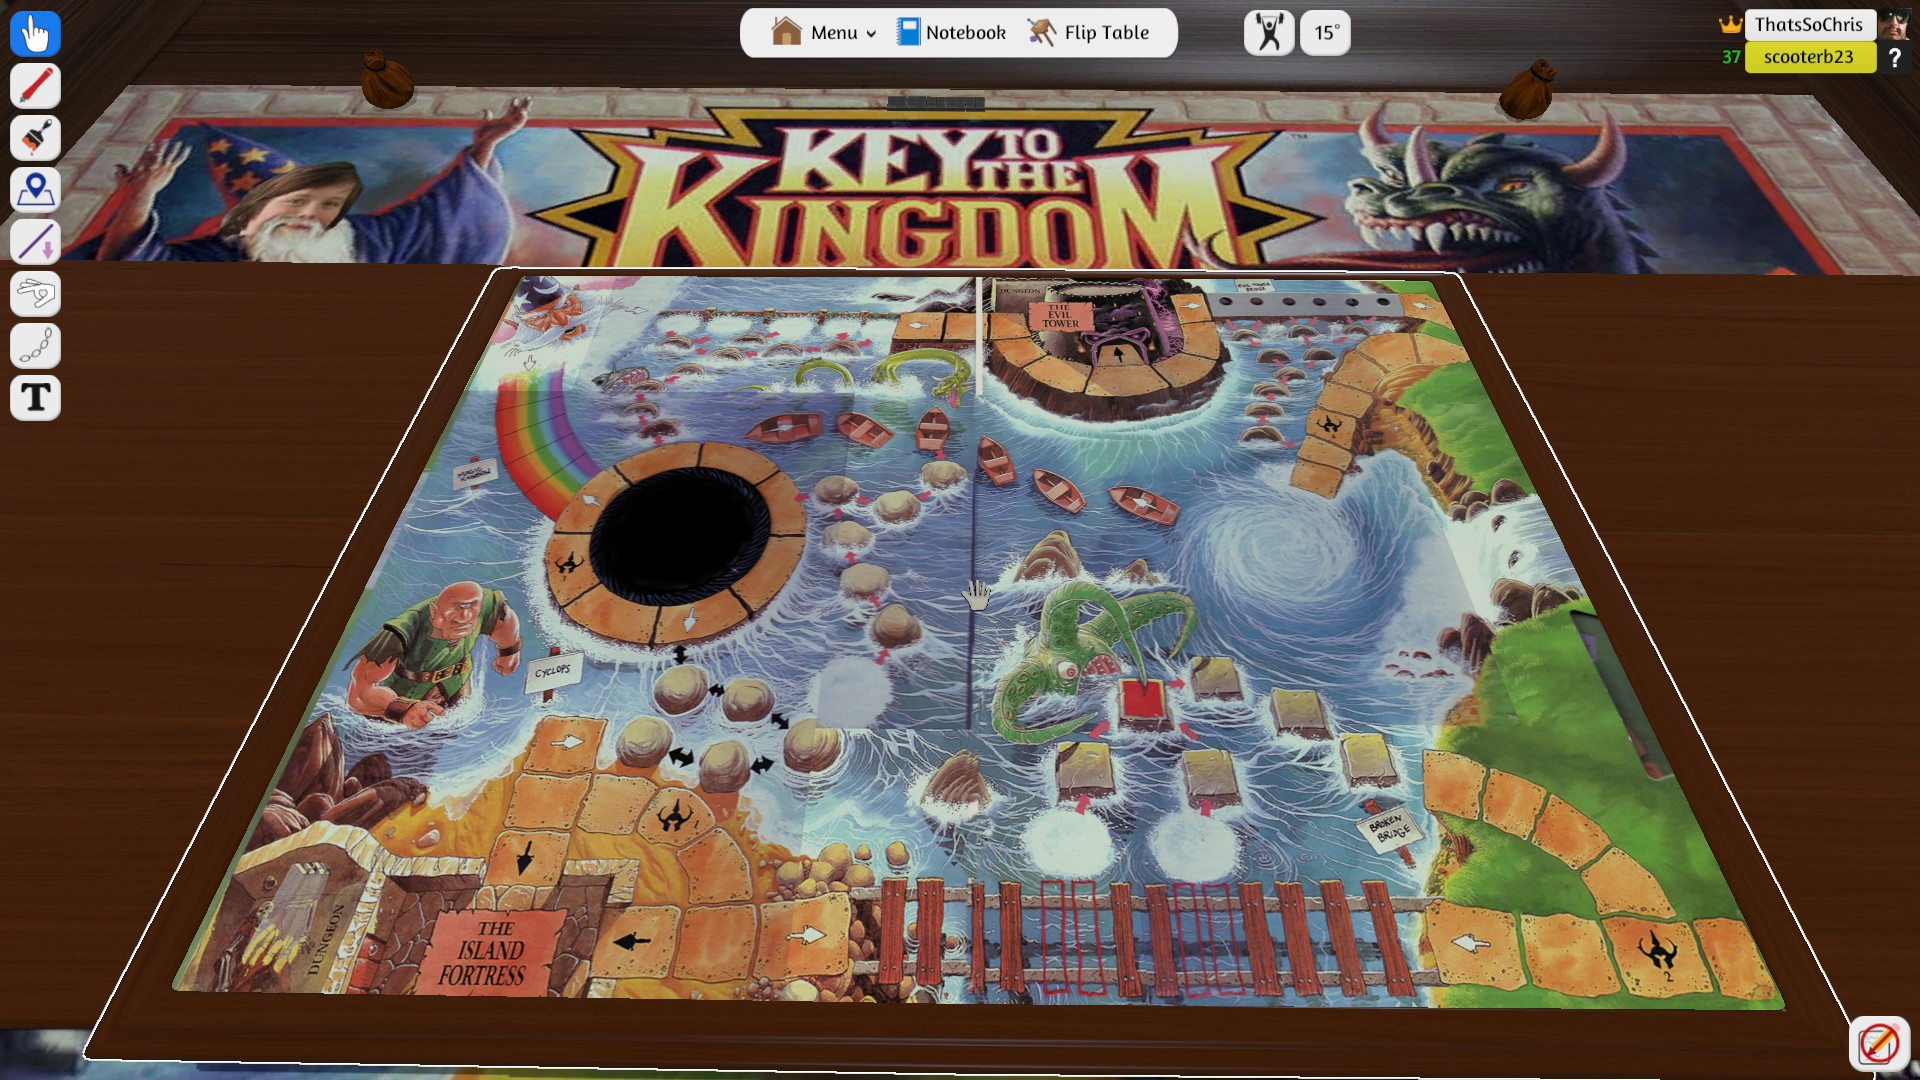 Key to the Kingdom! I haven't seen this game in decades!